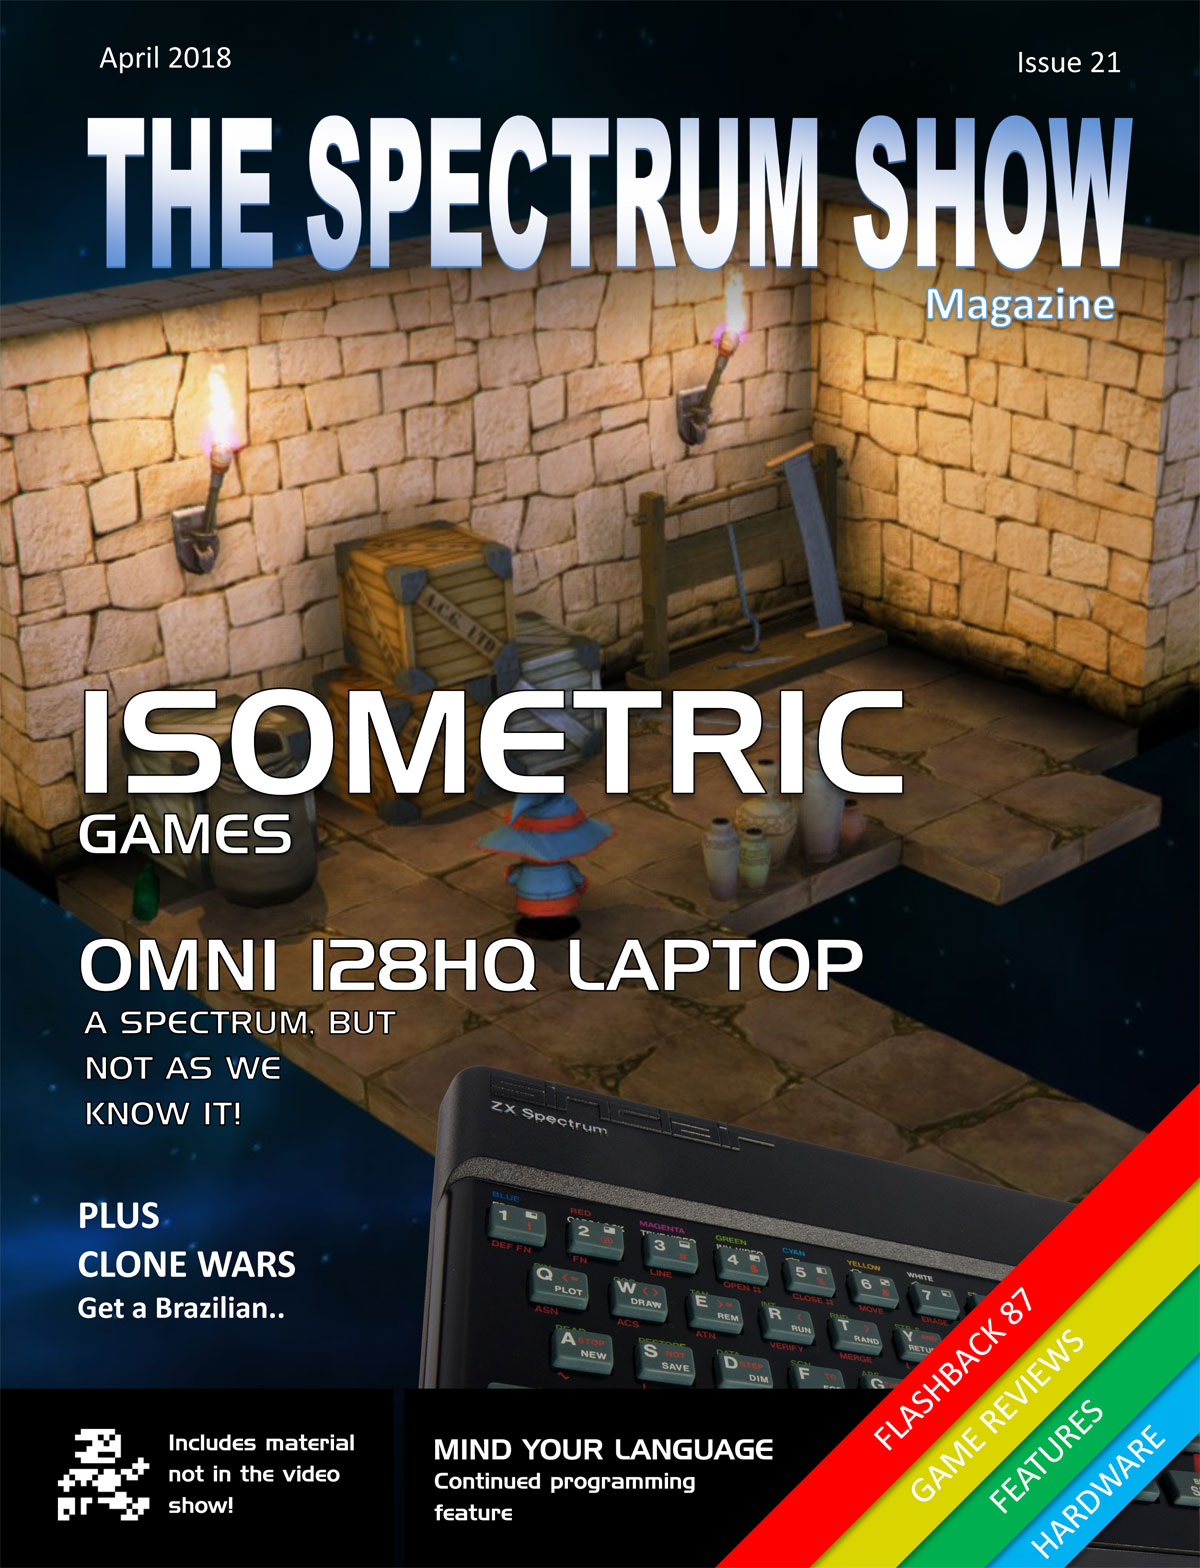 The Spectrum Show 21 cover